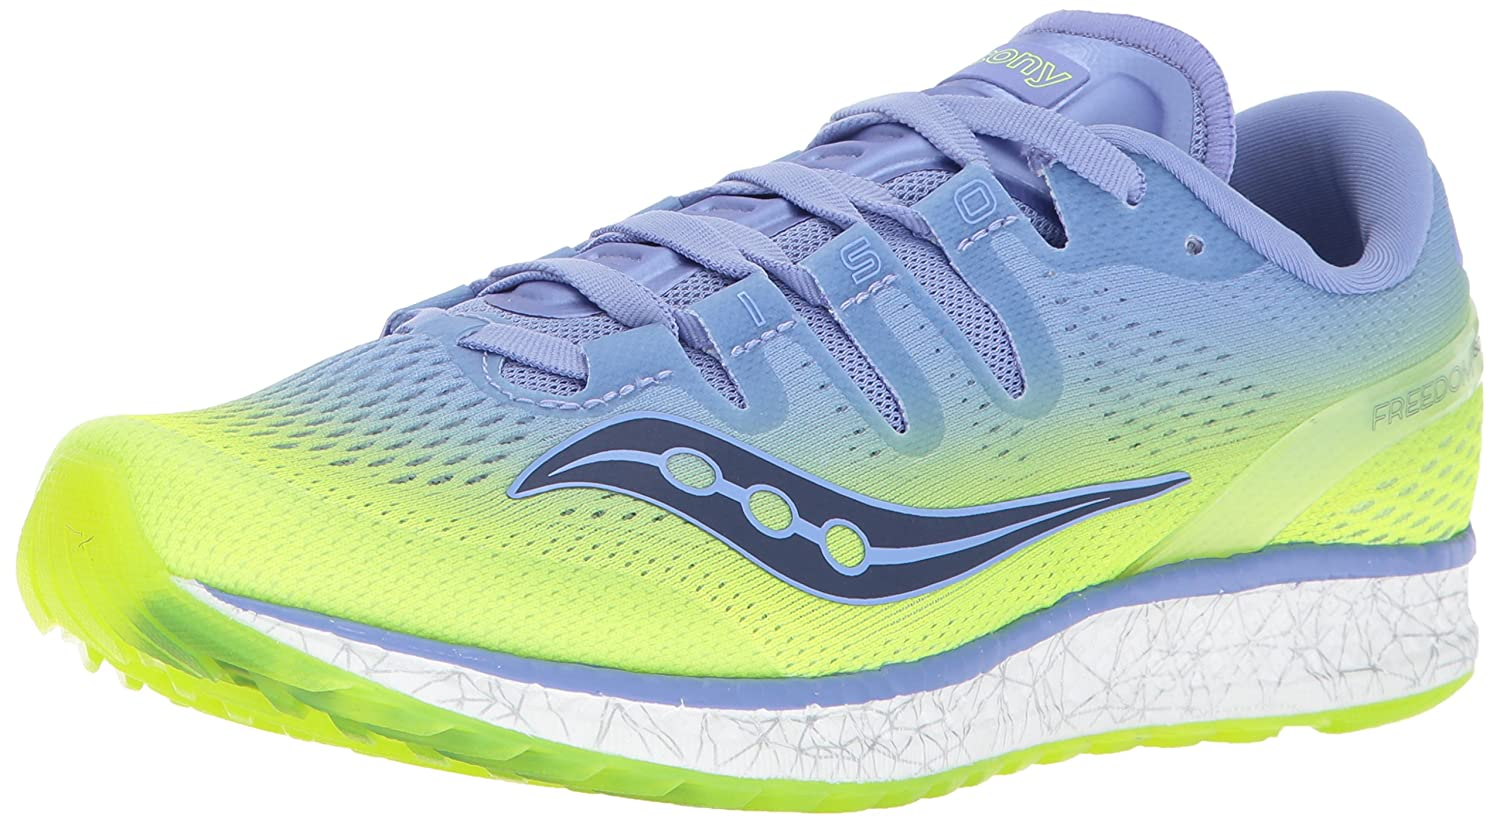 Saucony Freedom Iso, Chaussures de Fitness Femme FREEDOM ISO BLK